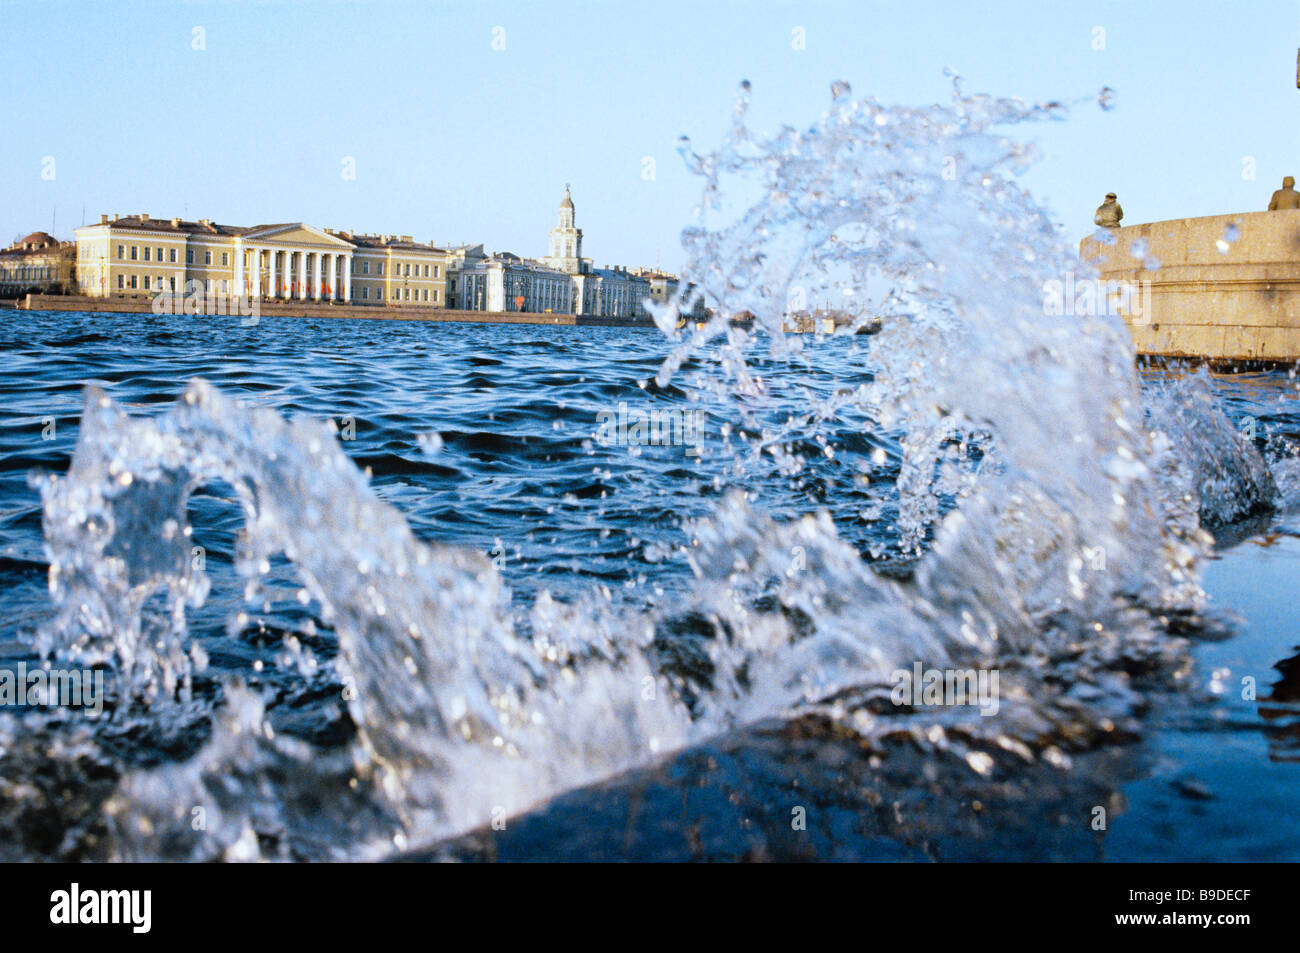 Peter I Museum of Anthropology and Ethnography Kunstkamera on the Neva River - Stock Image